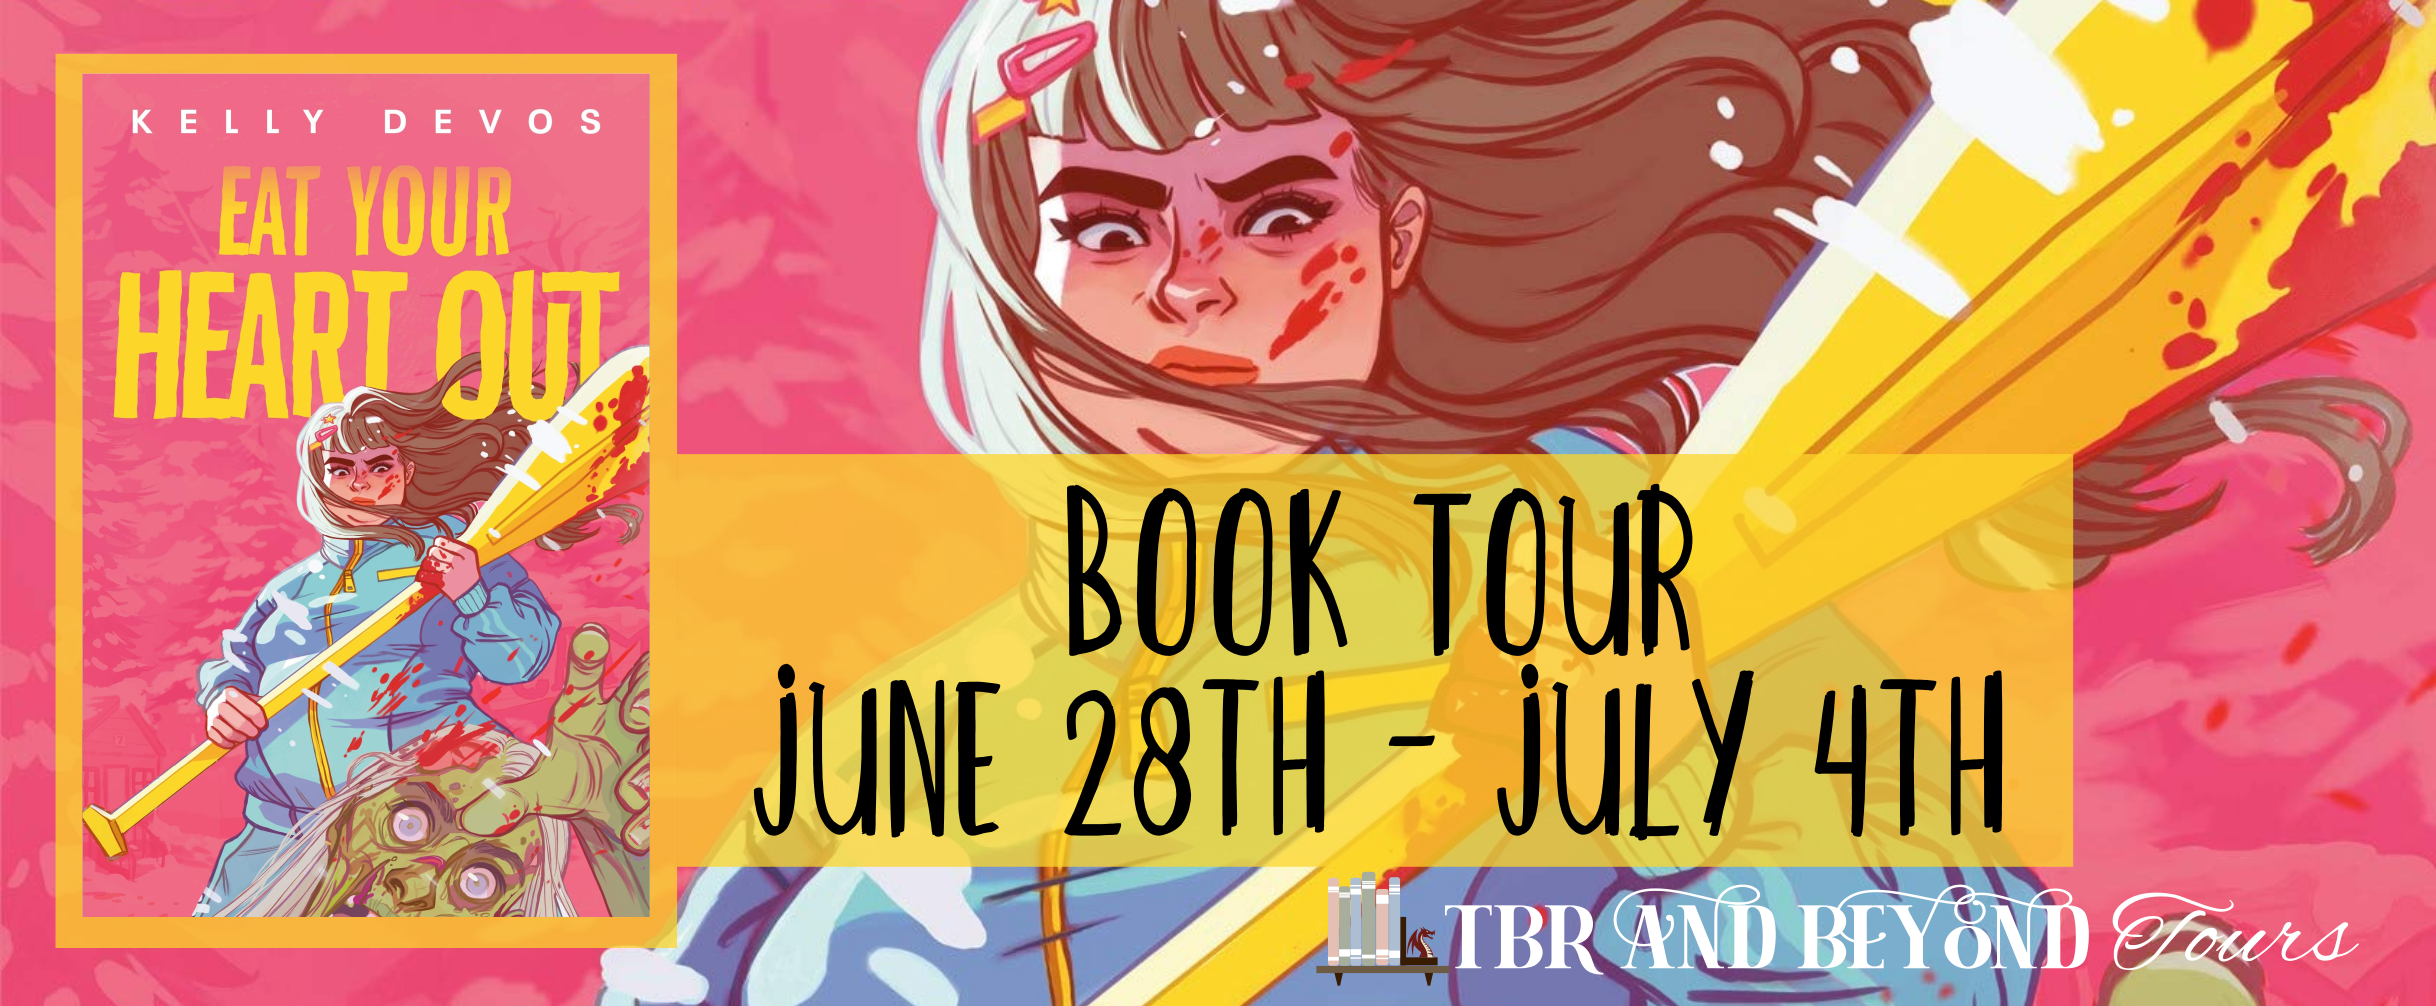 Blog Tour: Eat Your Heart Out by Kelly deVos (Reading Journal + Top 5 Reasons to Read + Giveaway!)